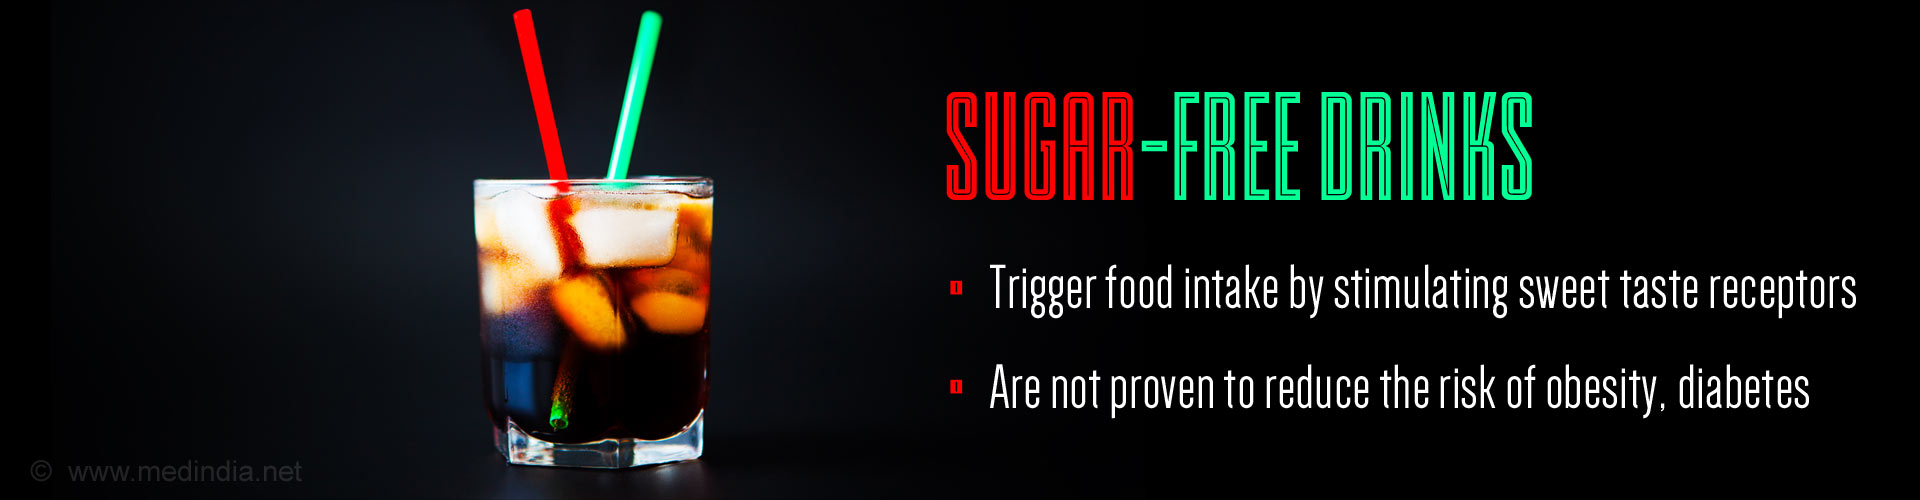 Sugar-Free Drinks Are No Better Than Full Sugar Drinks